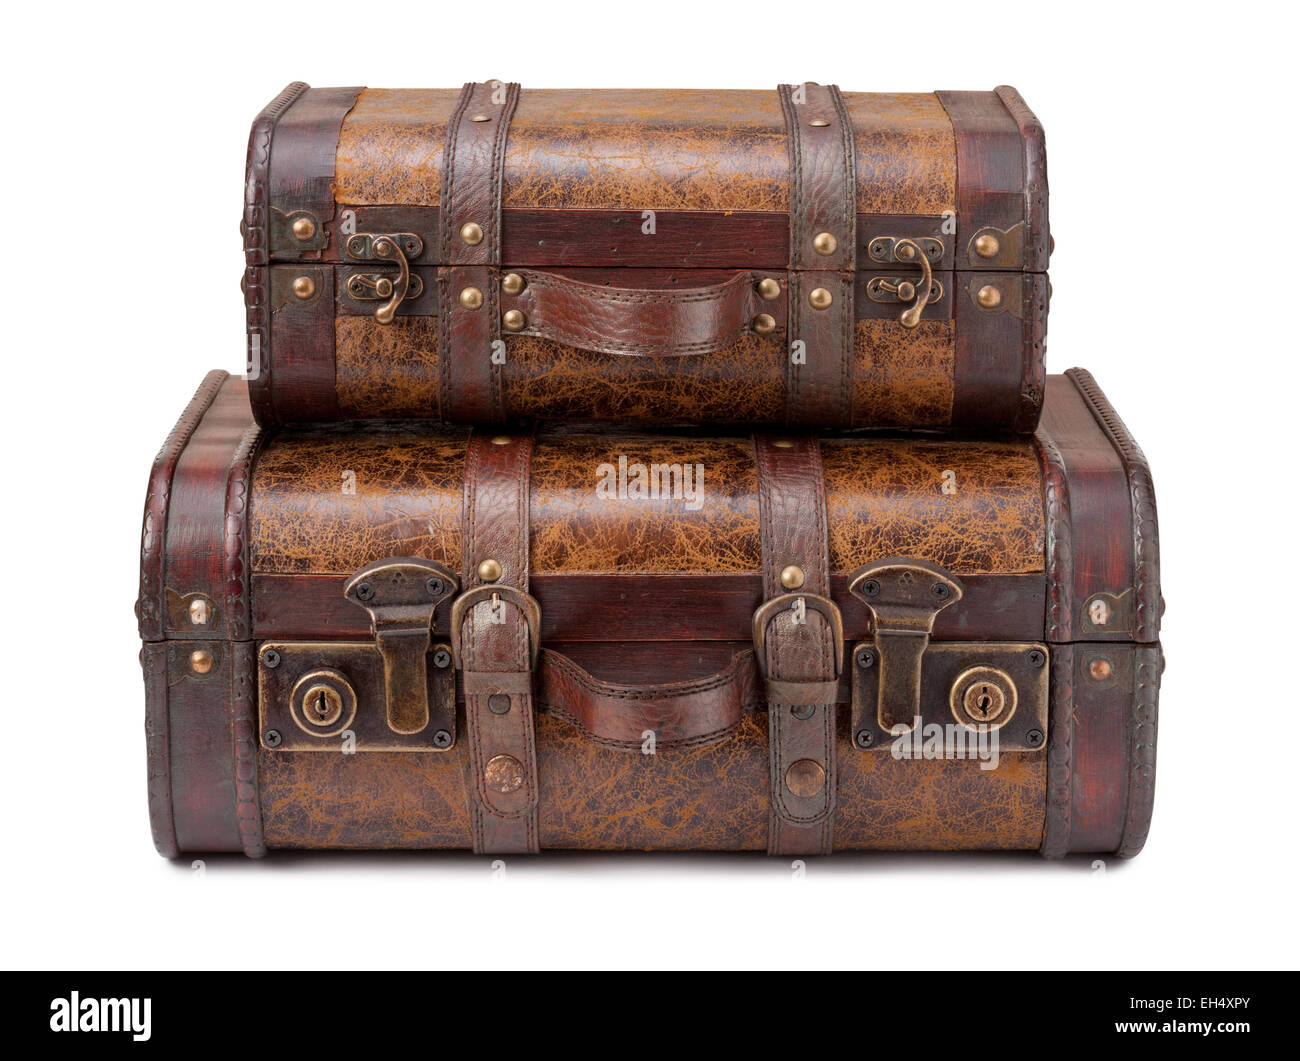 Two Old Suitcases Stacked on top of each other. - Stock Image